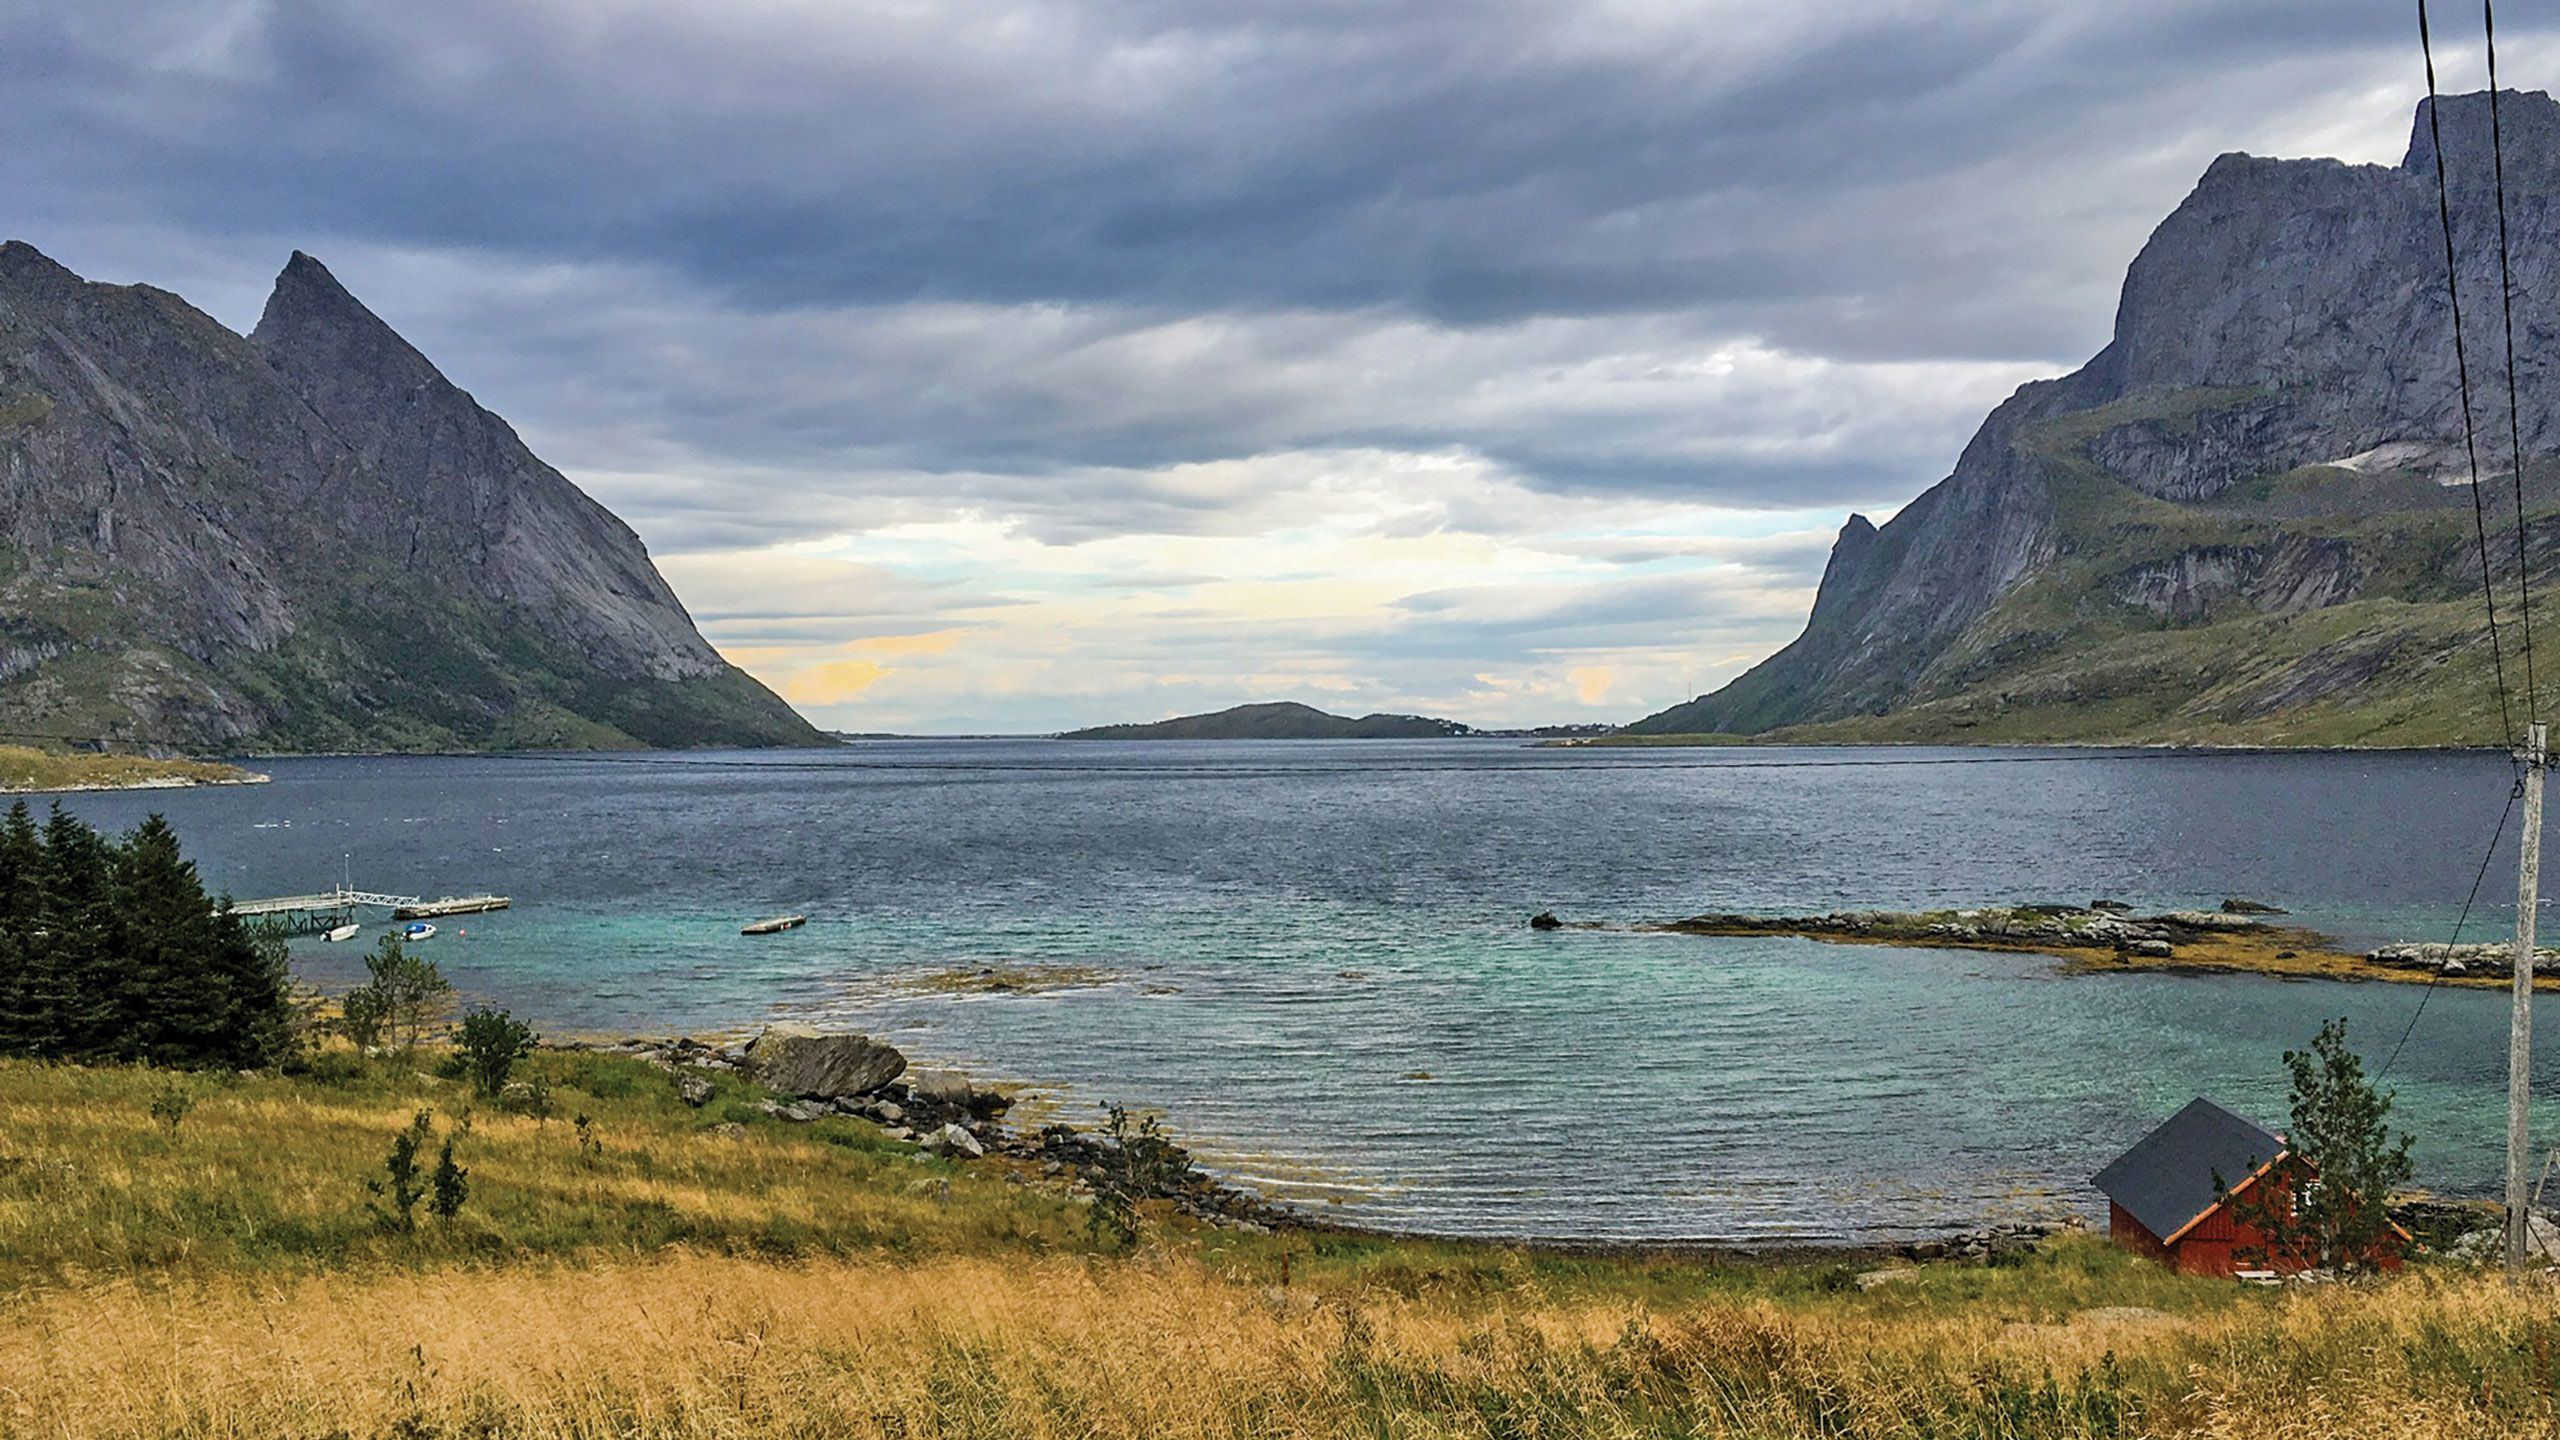 A fjord near Reine, one of the villages on the Lofoten archipelago. Photo by William Nash